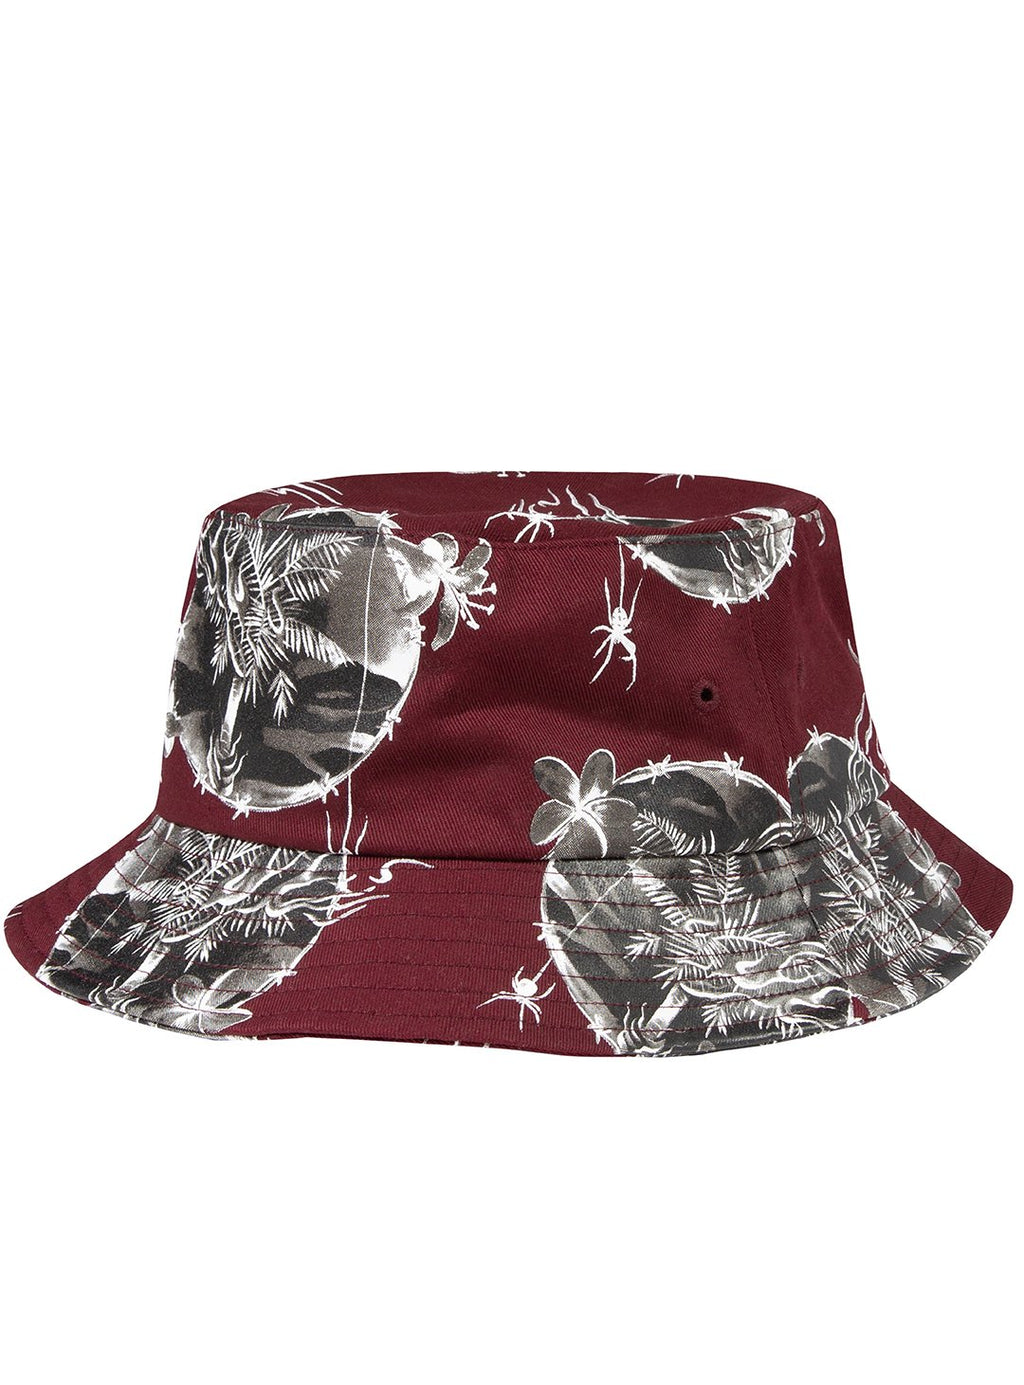 OTHELO BUCKET HAT